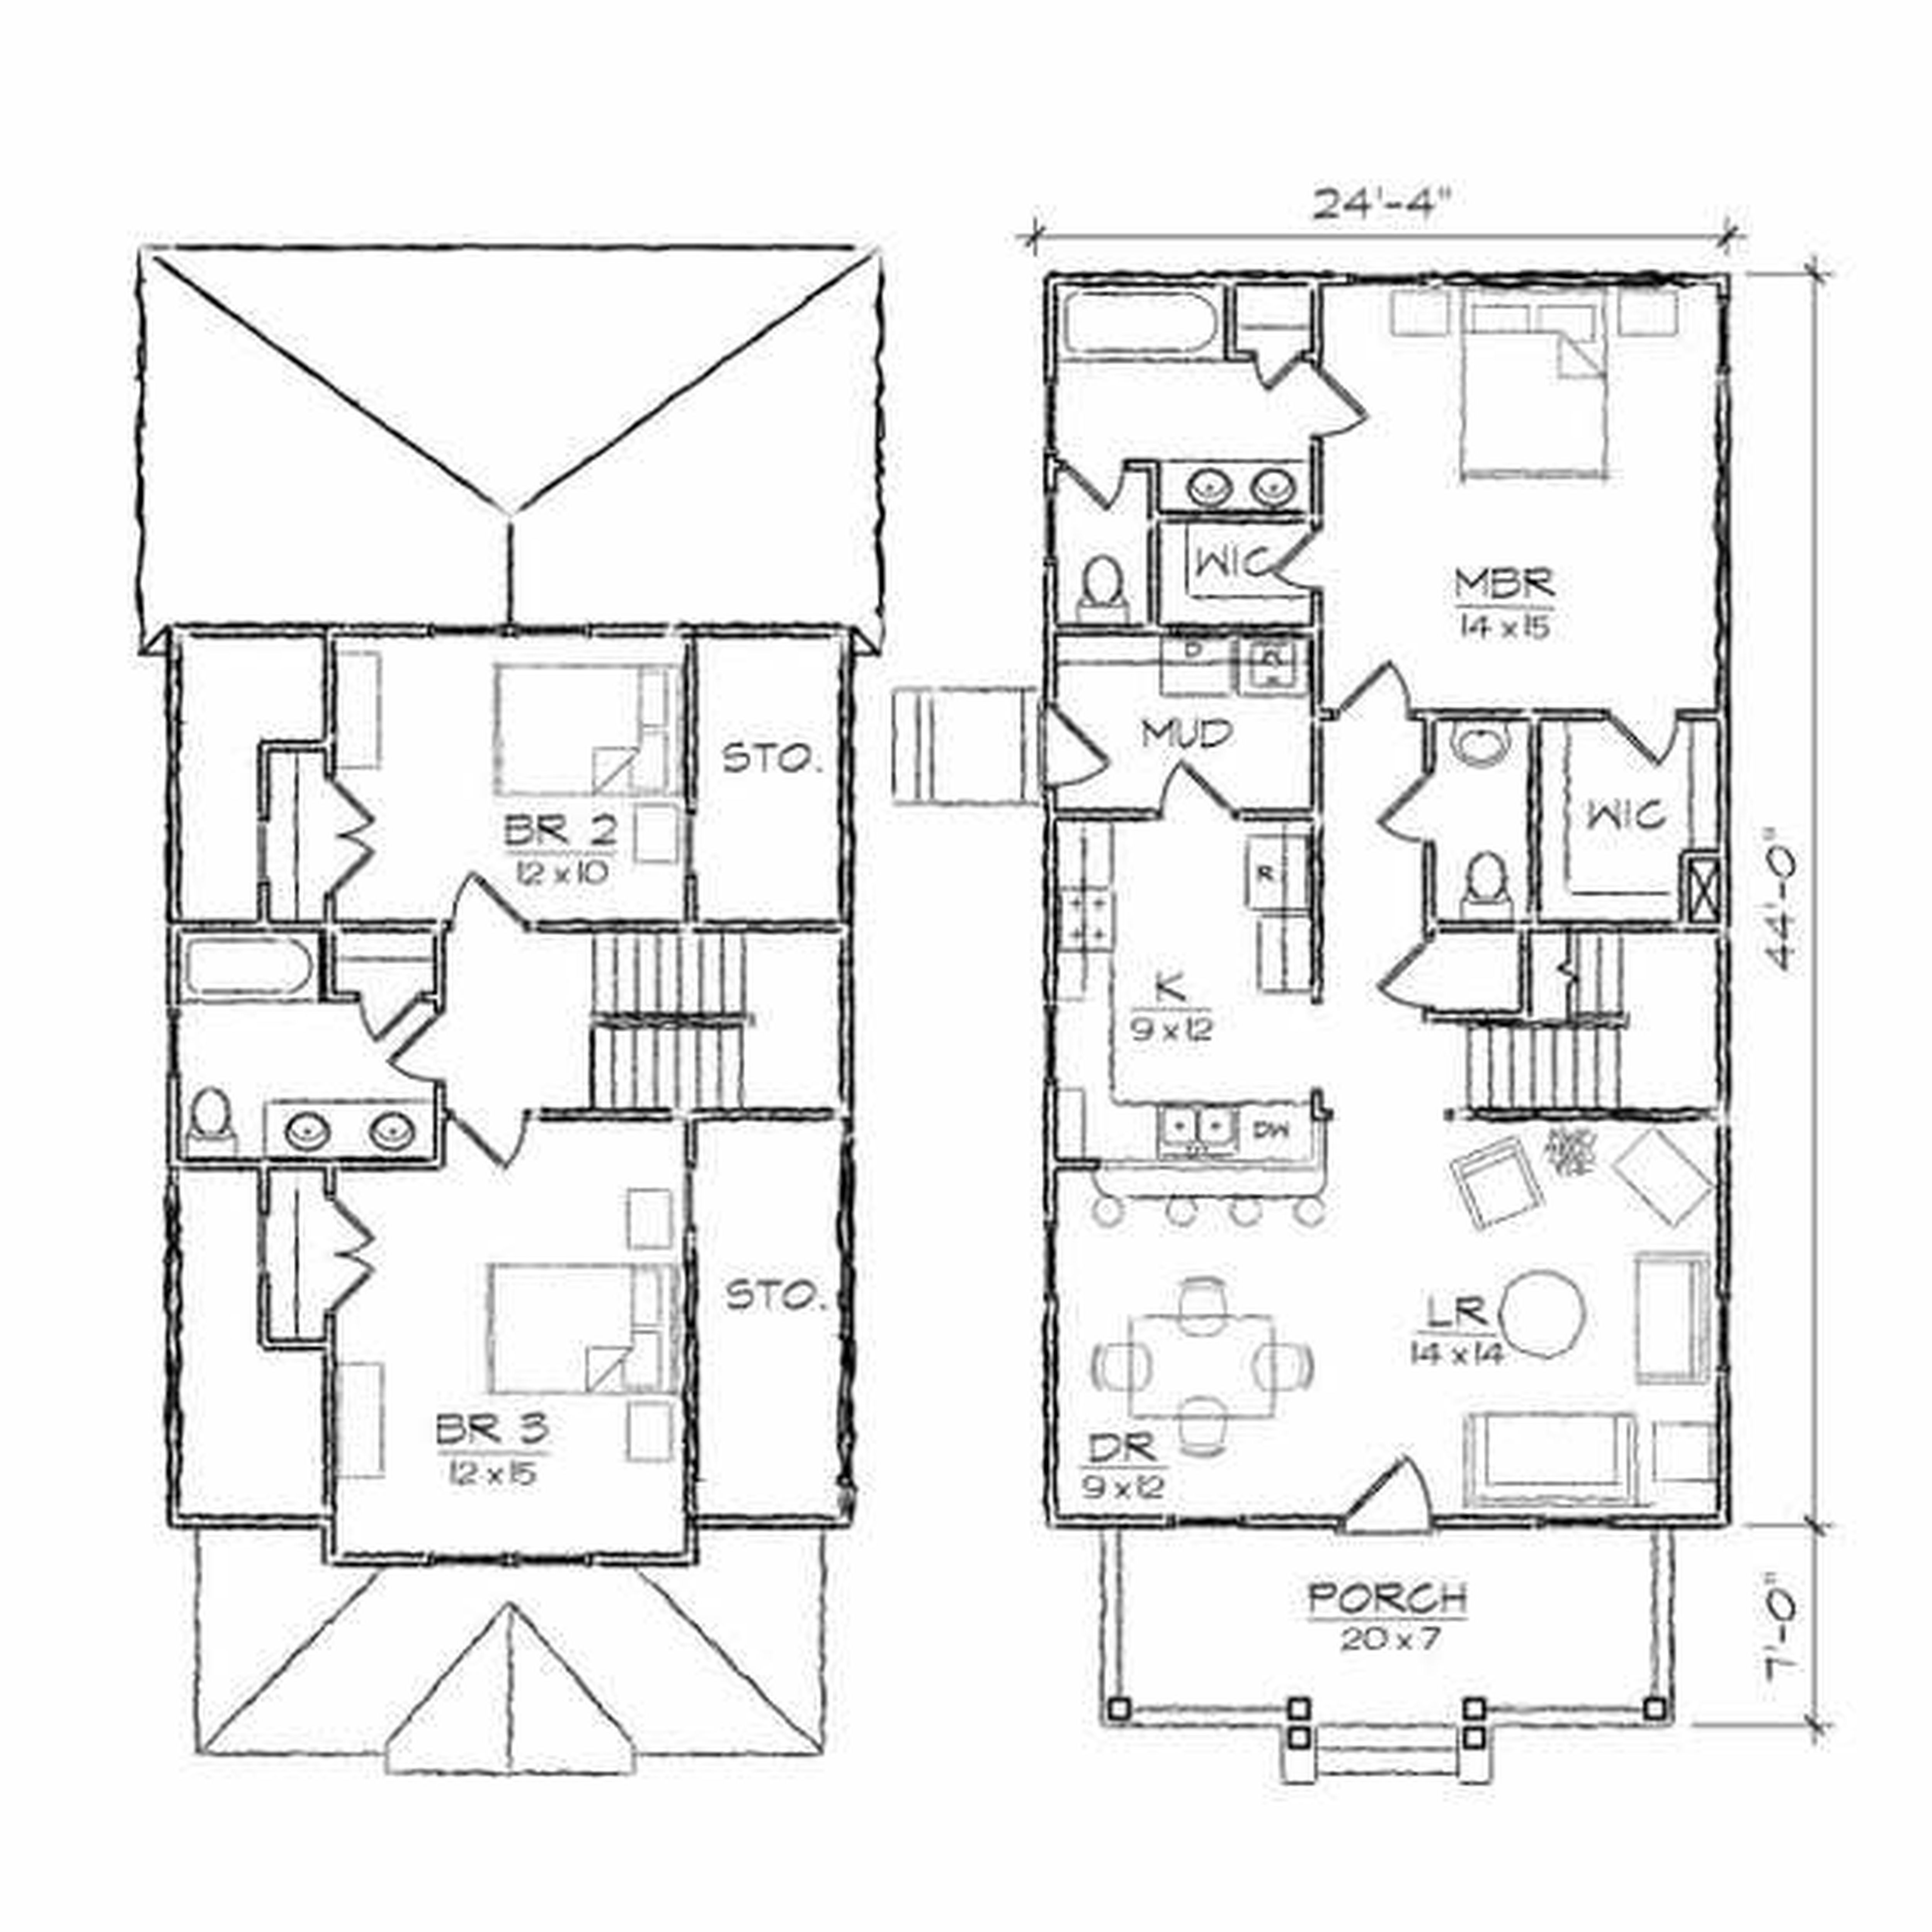 5000x5000 The Advantages We Can Get From Having Free Floor Plan Design